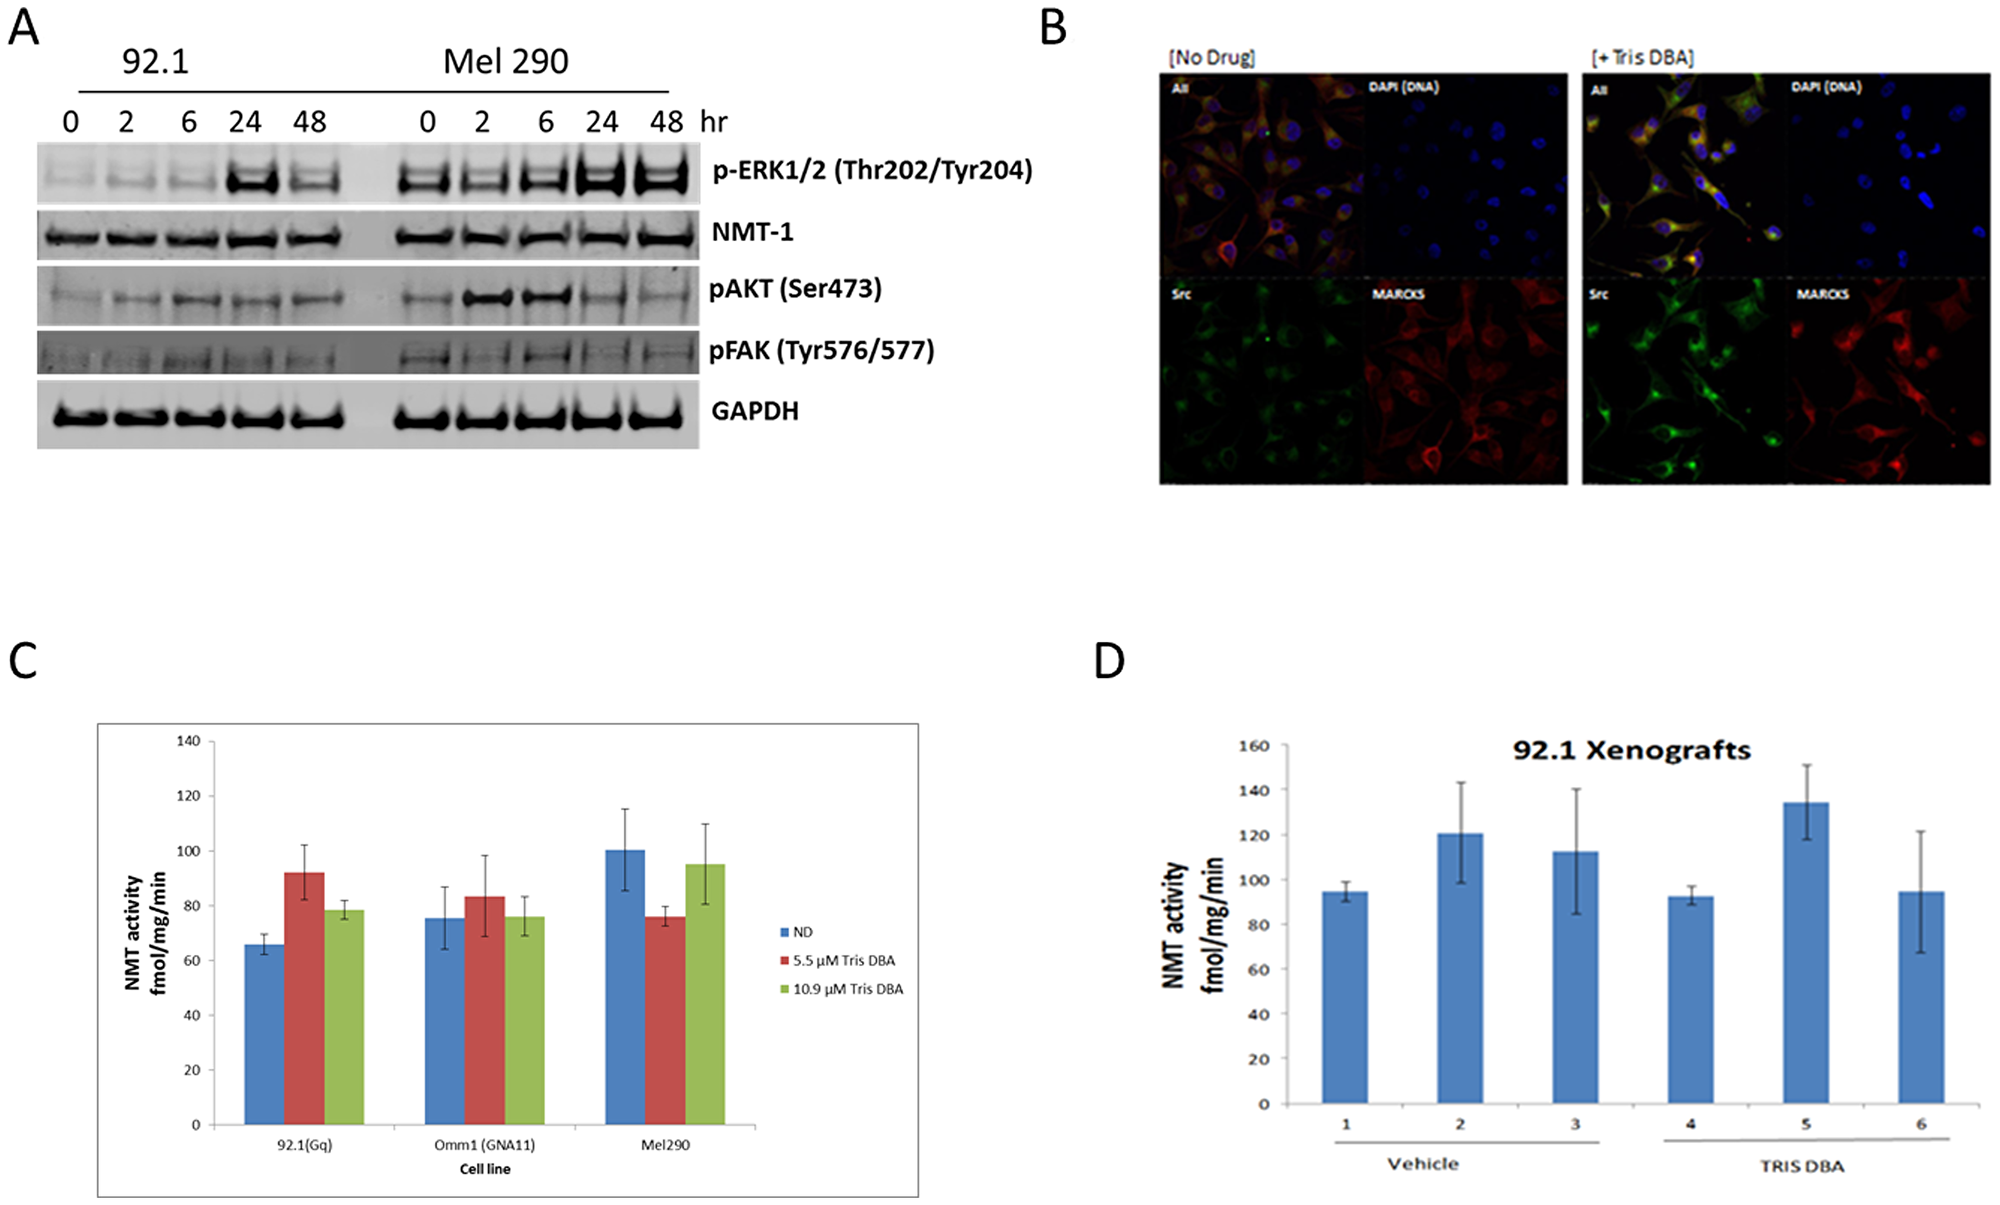 Tris DBA inhibits uveal melanoma tumor growth independent of NMT1.